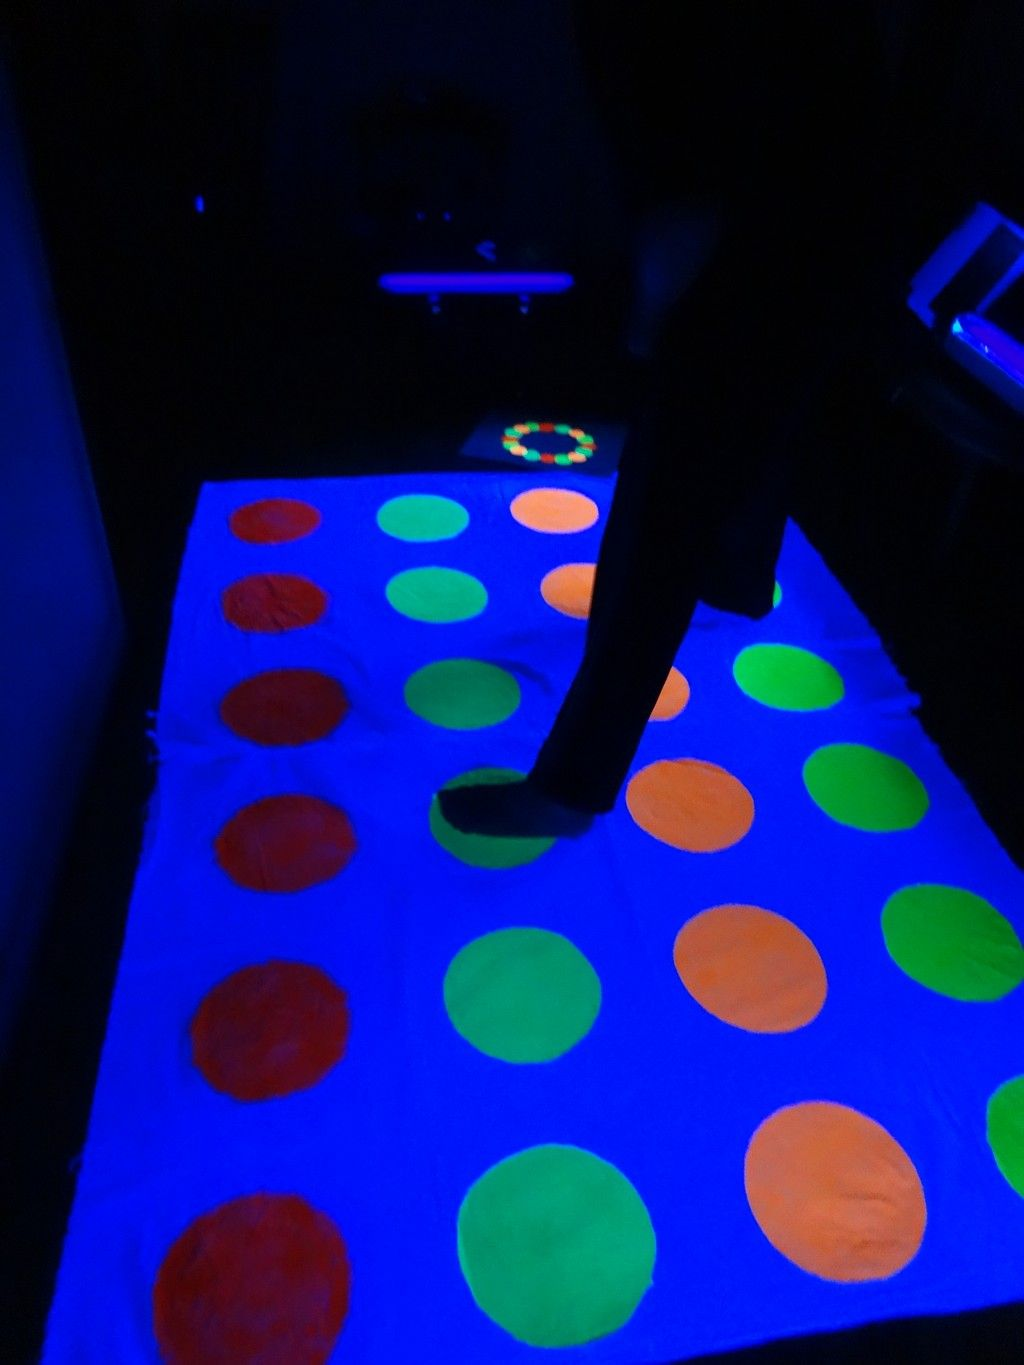 Make Your Own Glow In The Dark Twister Game Glow Birthday Party Glow In Dark Party Neon Party